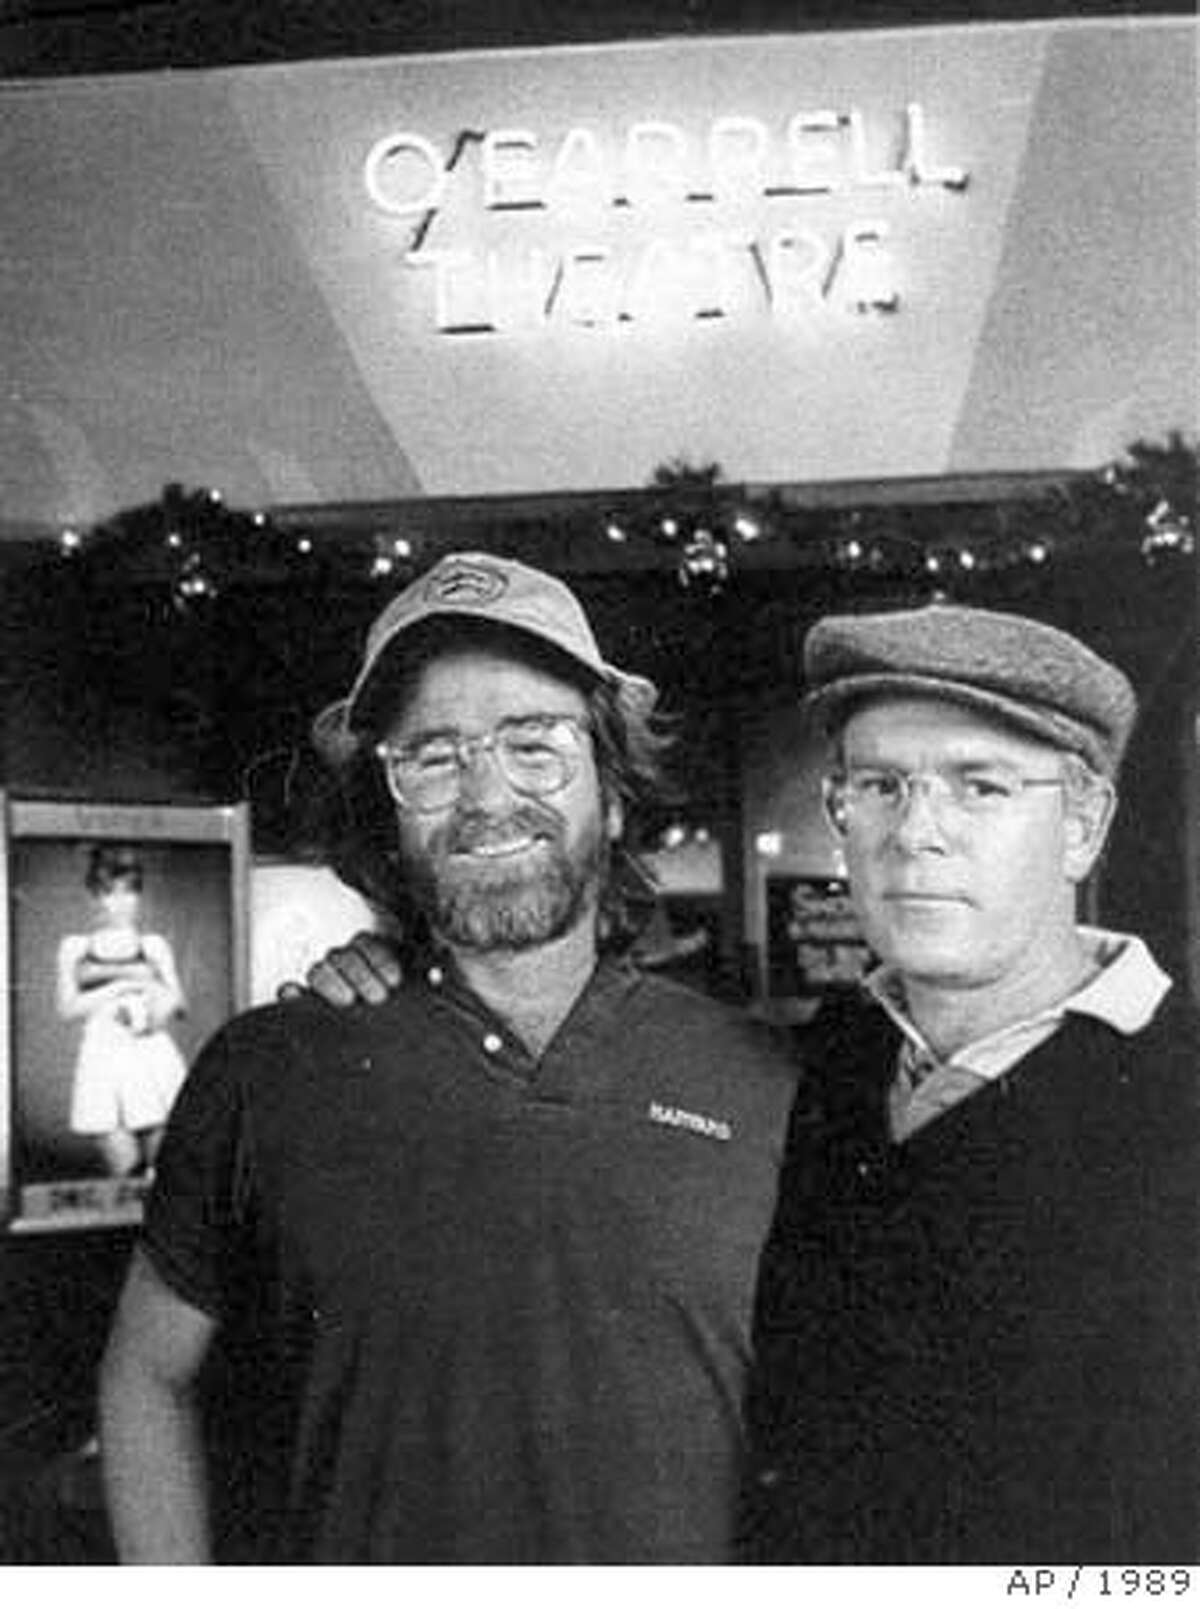 **FILE** Artie Mitchell, left, and his brother Jim Mitchell pose for a photograph in this file photo taken at the O'Farrell theater in San Francisco, Dec. 1989. Jim Mitchell, the pioneering pornographer who was convicted of killing his brother Artie with whom he built the Mitchell Brothers skin flick empire, died Thursday, July 12, 2007, at age 63, according to the Sonoma County coroner. (AP Photo) DEC. 1989 FILE PHOTO